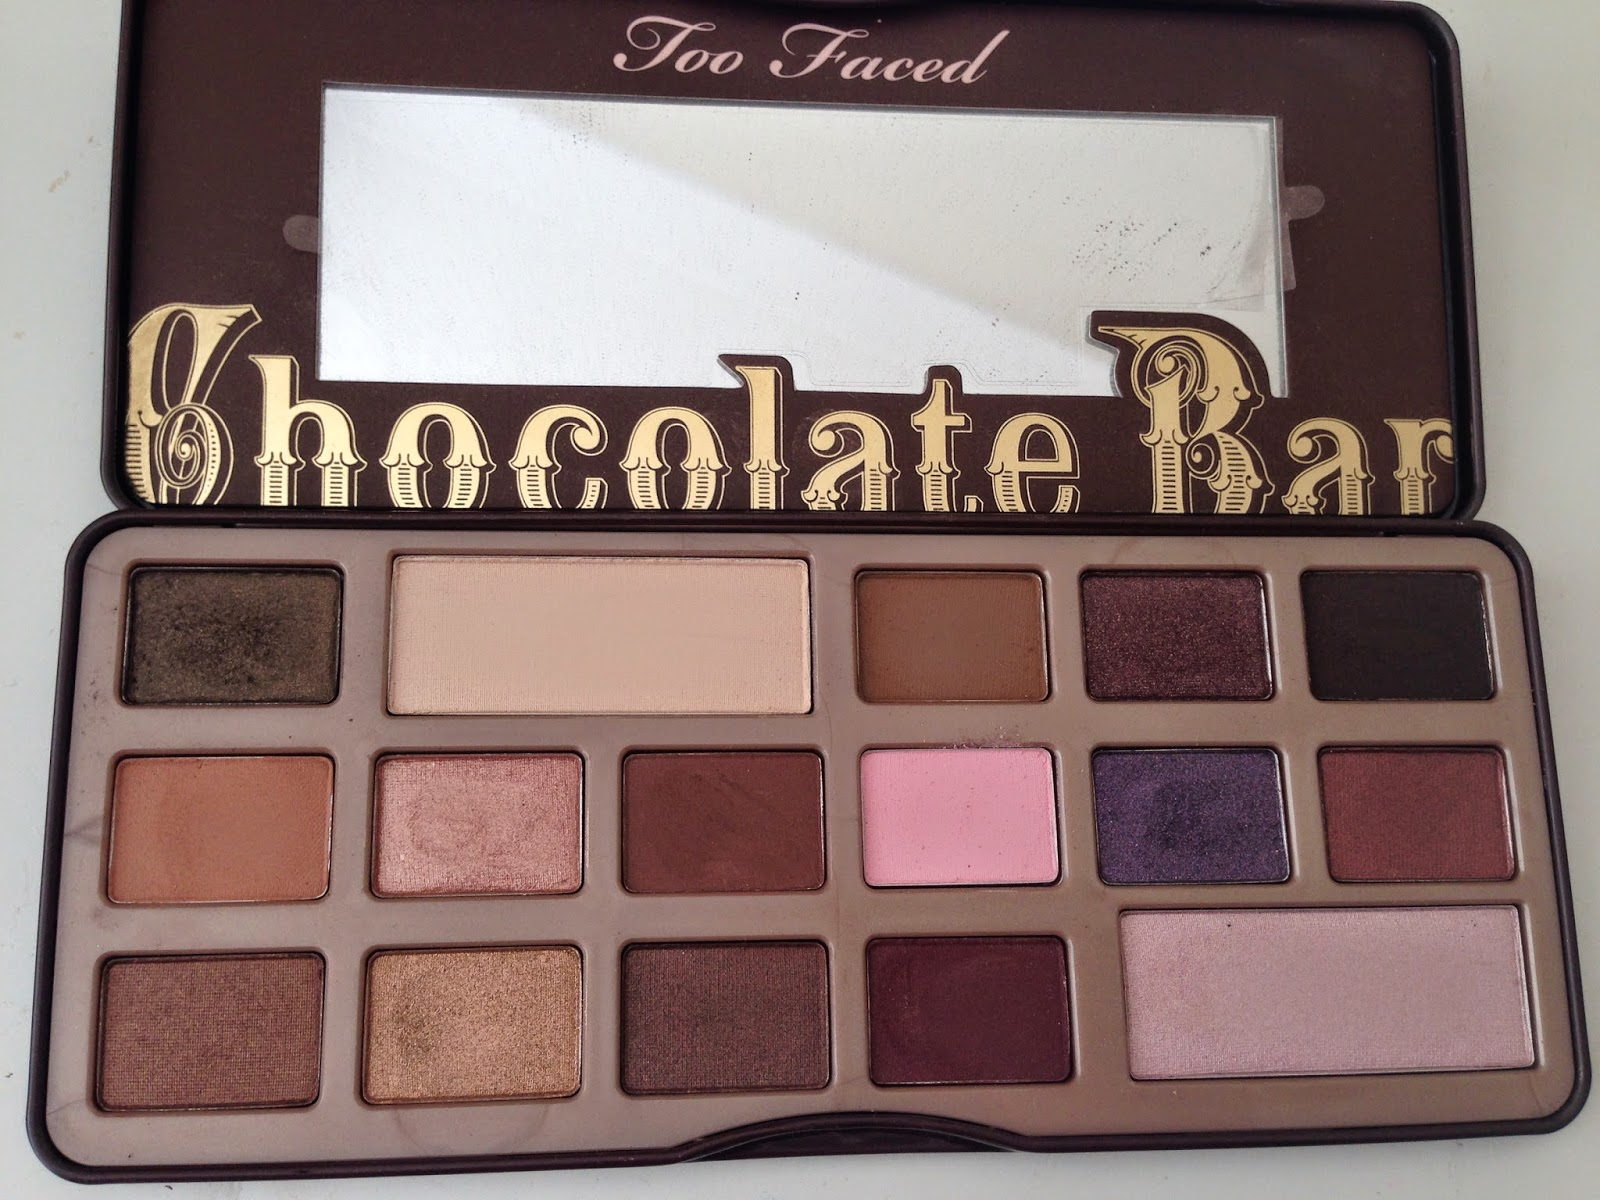 Too Faced Chocolate Bar eyeshadow palette review - Swatch